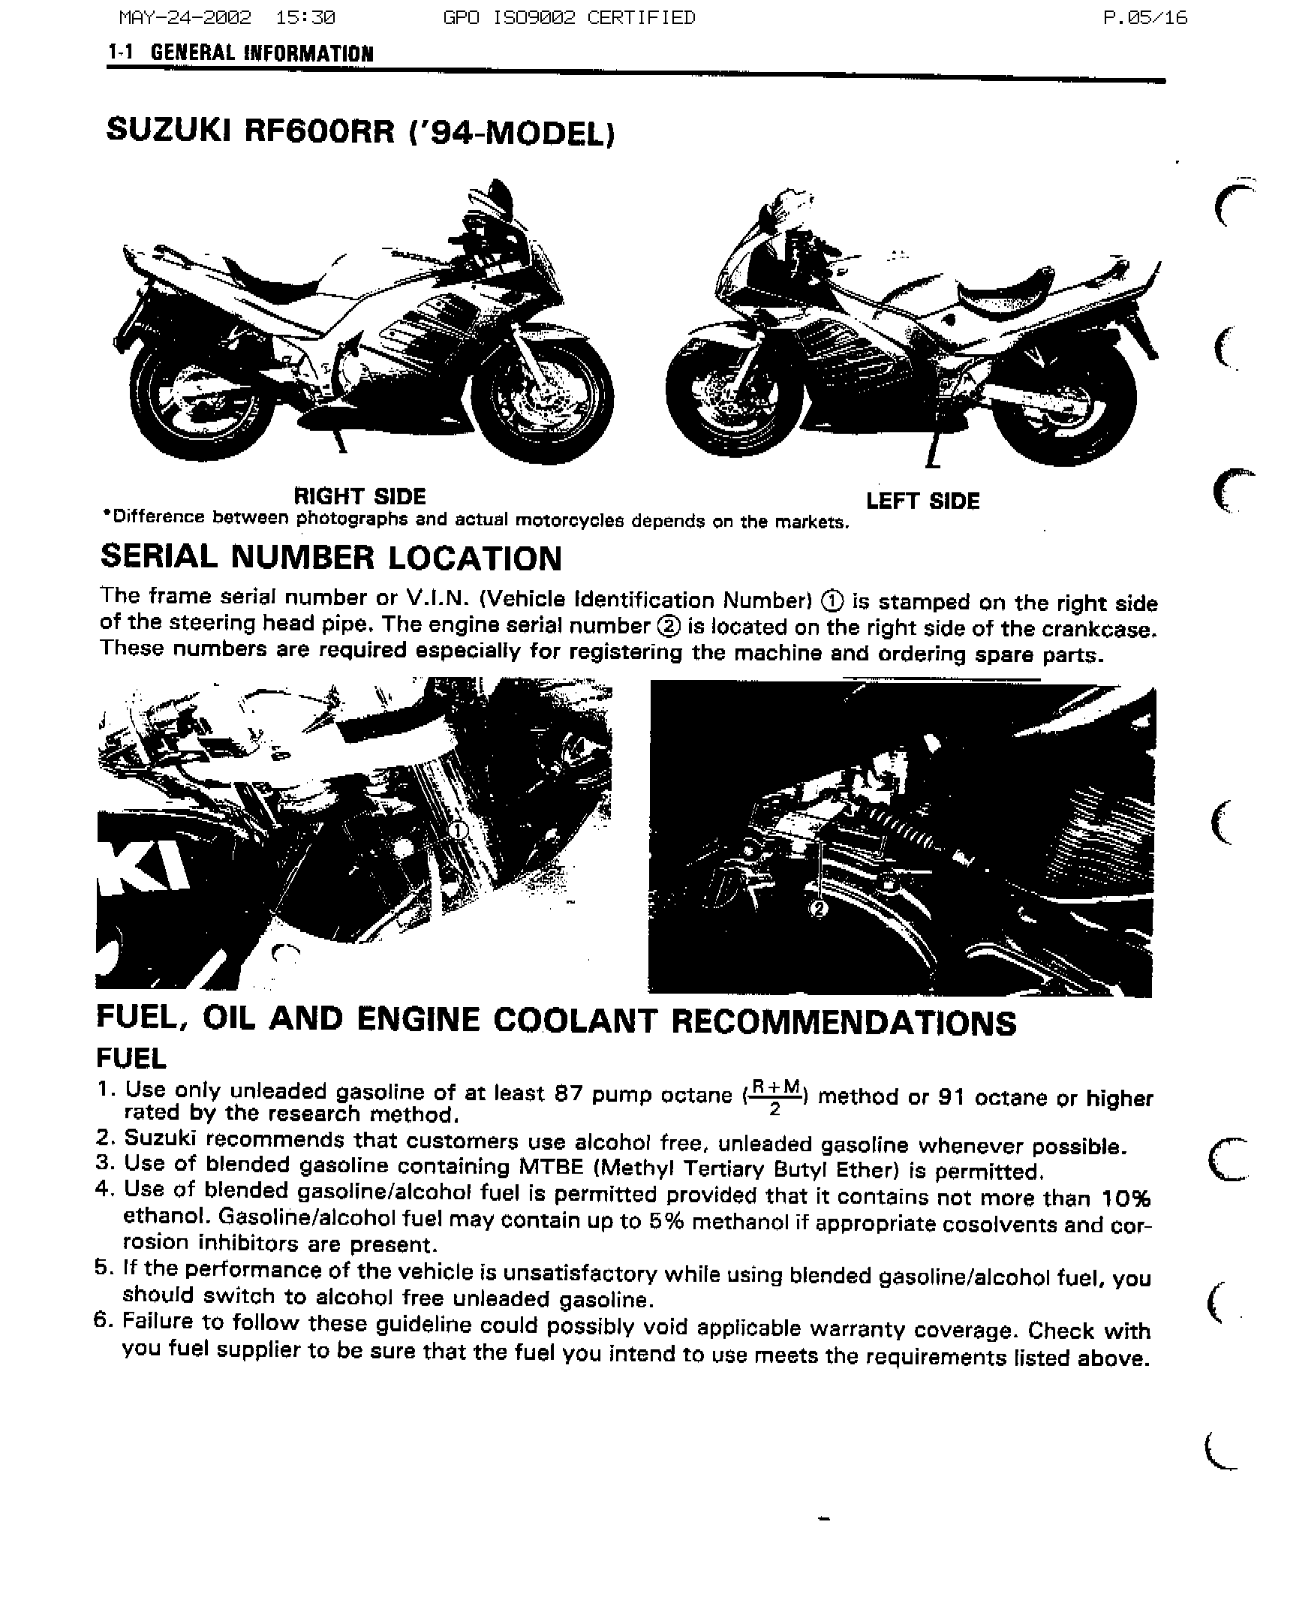 Suzuki RF 600, RF600 (1993) Service Manual